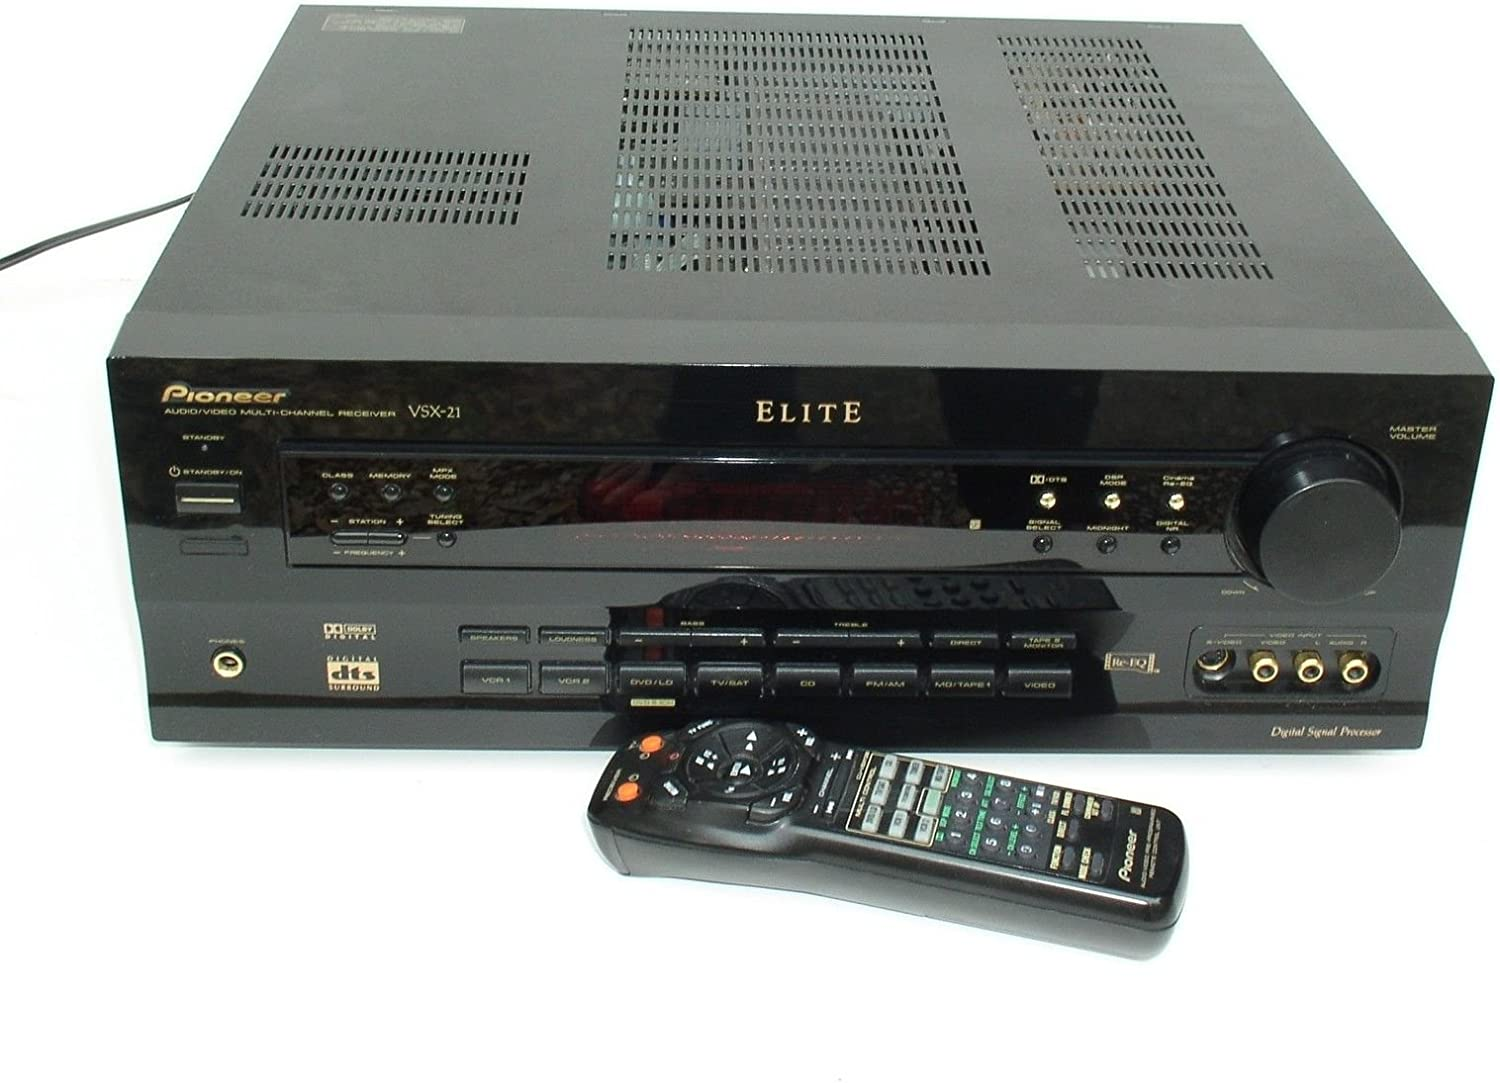 5.1 Home Theater Receiver & Remote Pioneer VSX-21 Elite